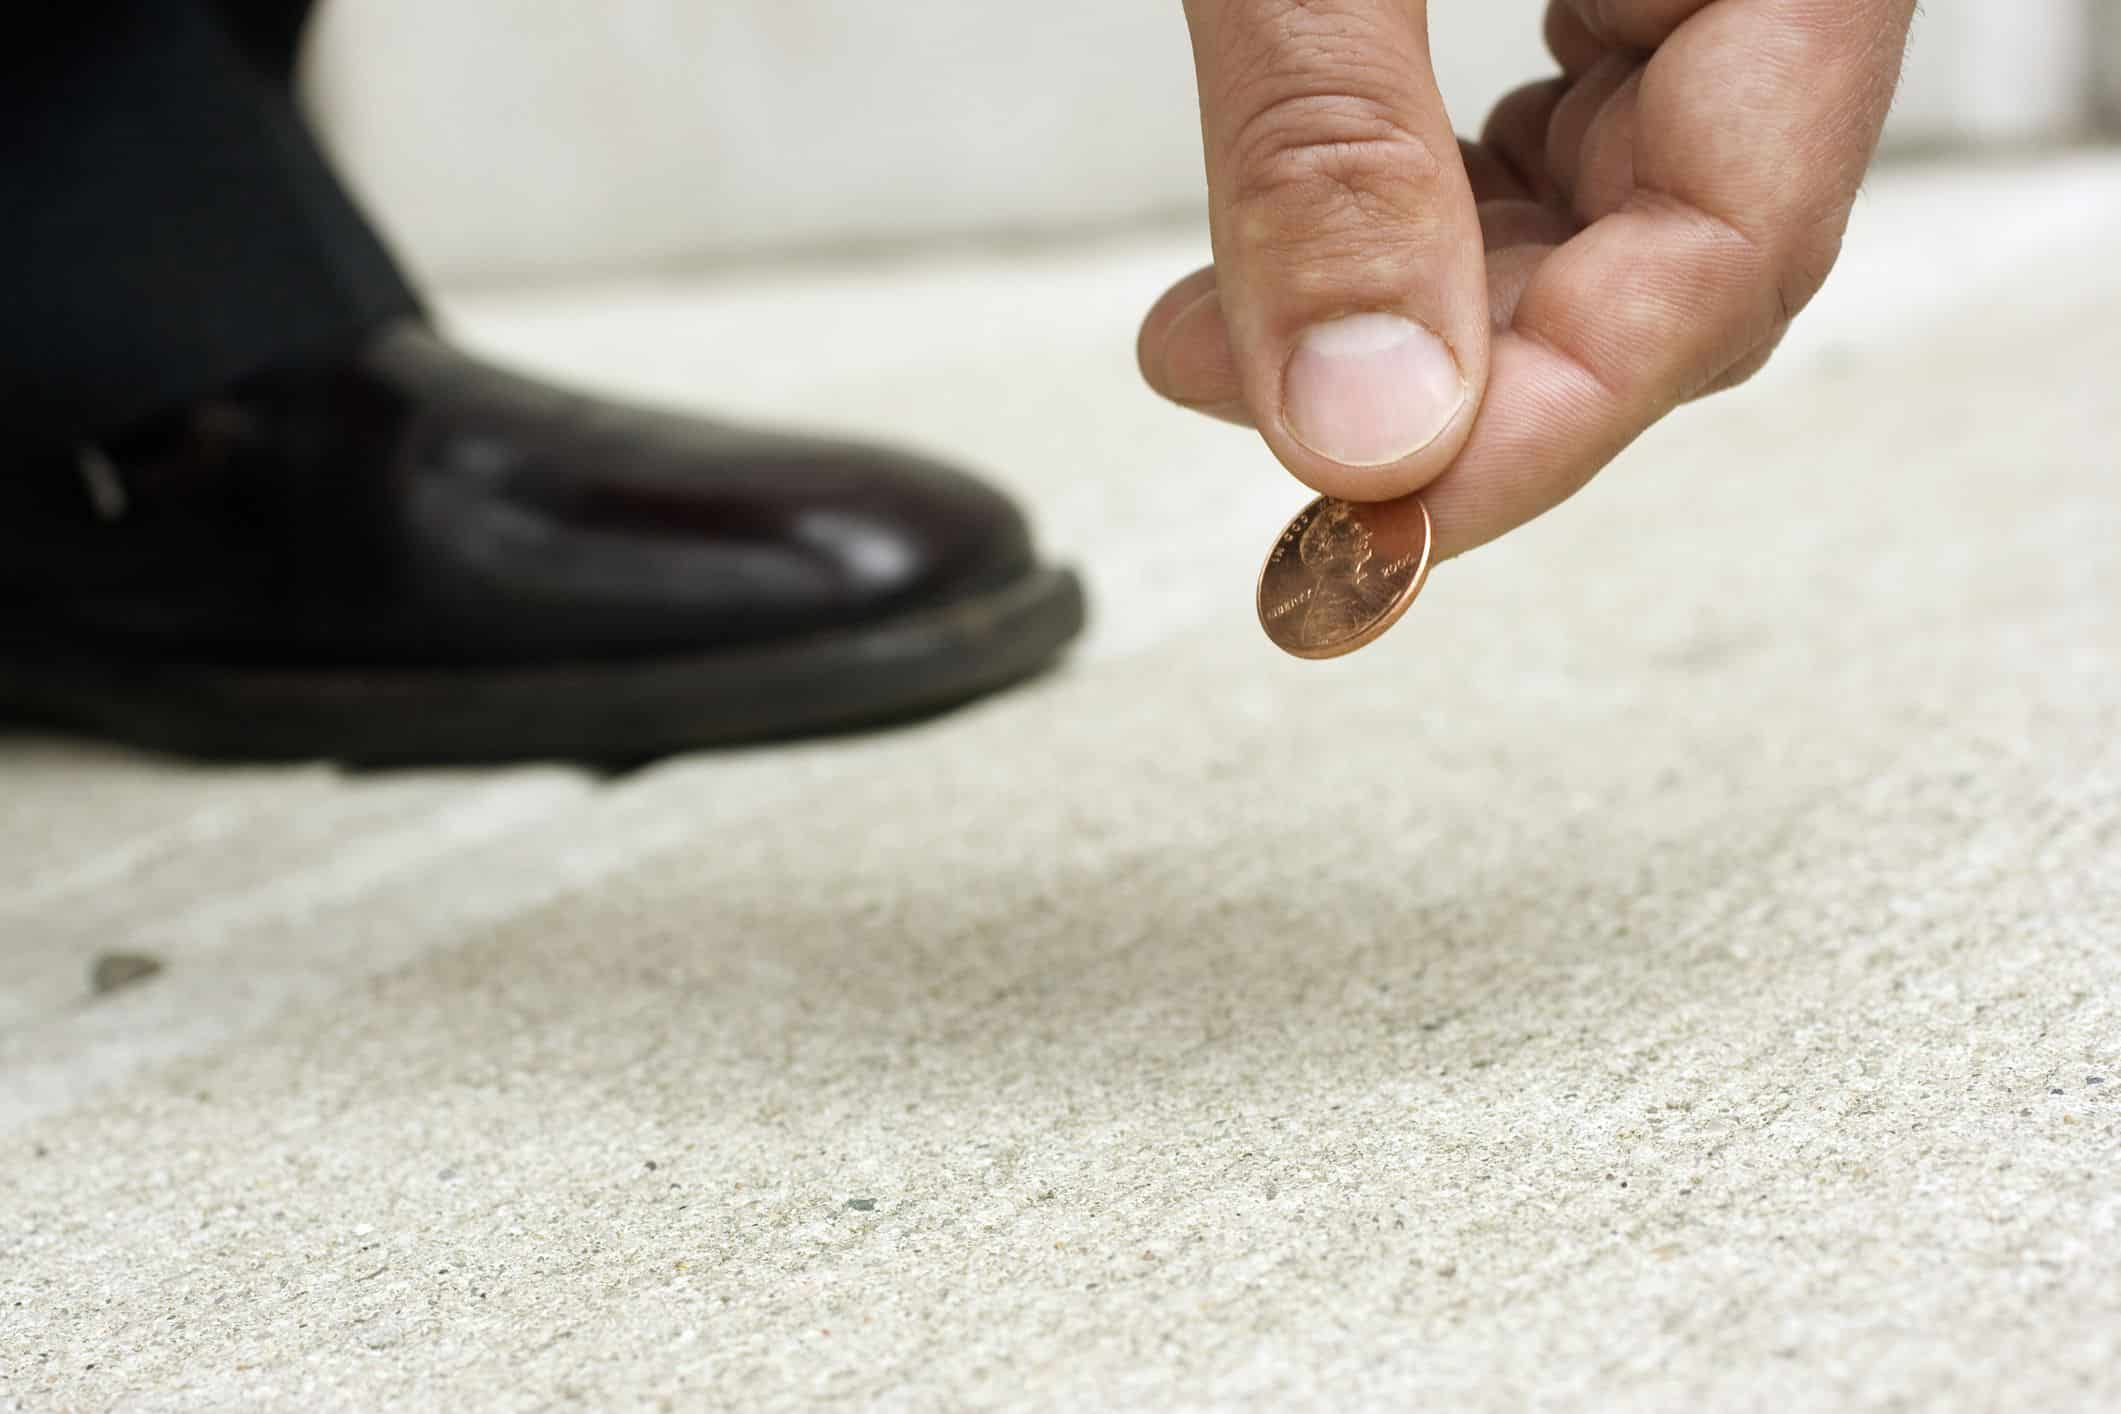 man hand picking up a penny